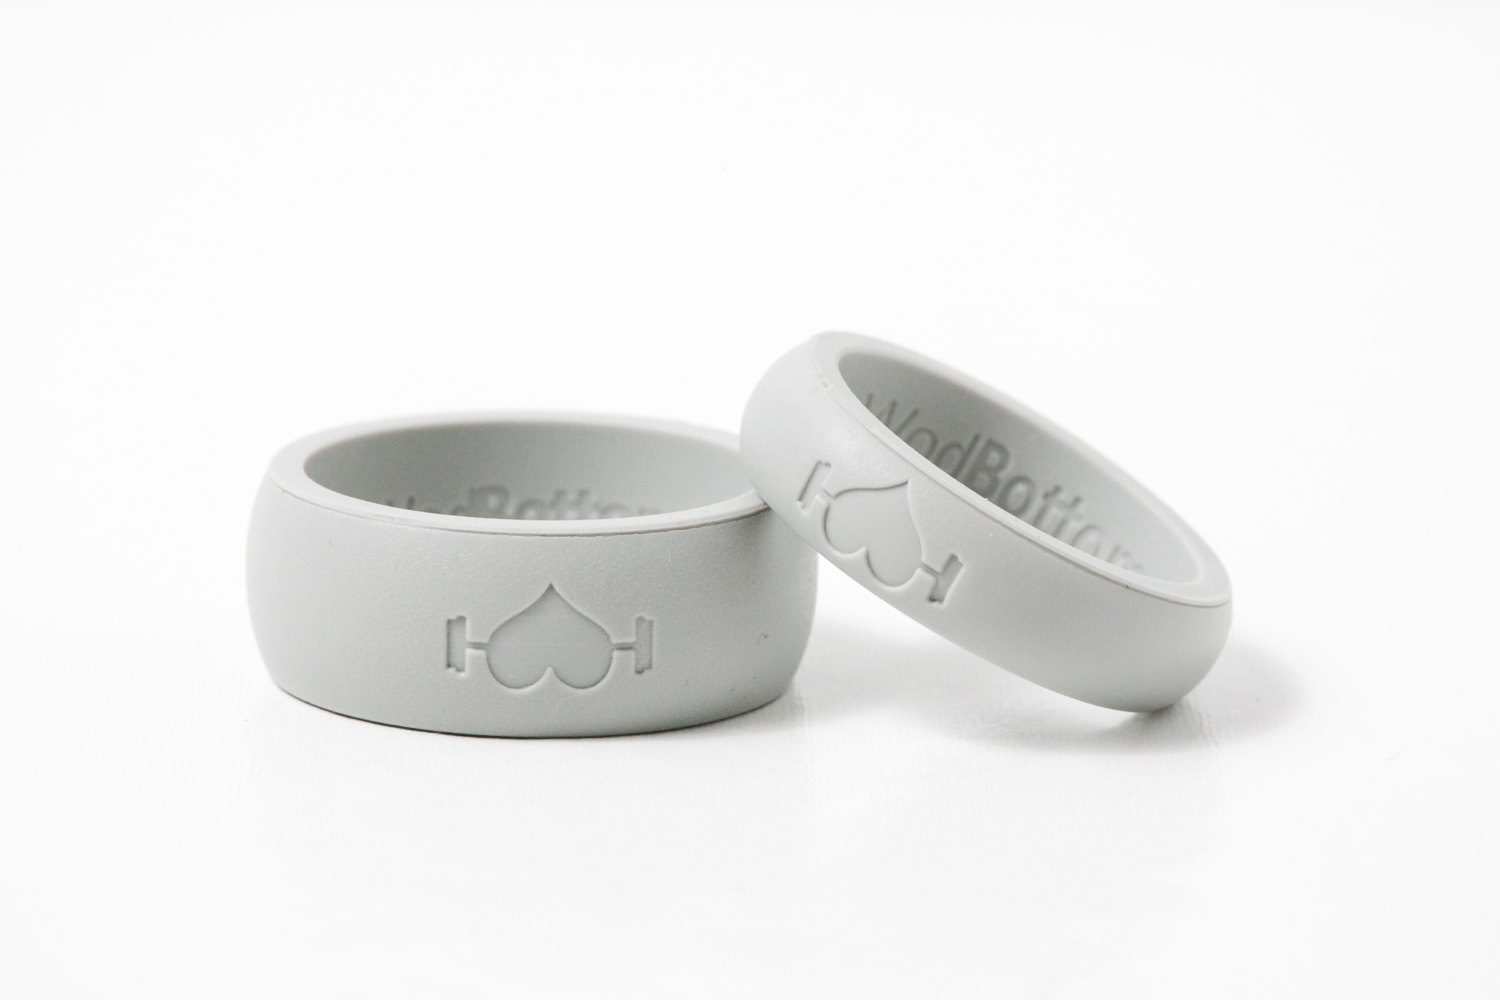 2pack Silicone Wedding Rings For Men Women 2 Bands Choose: Message Wedding Bands With Silicone At Websimilar.org